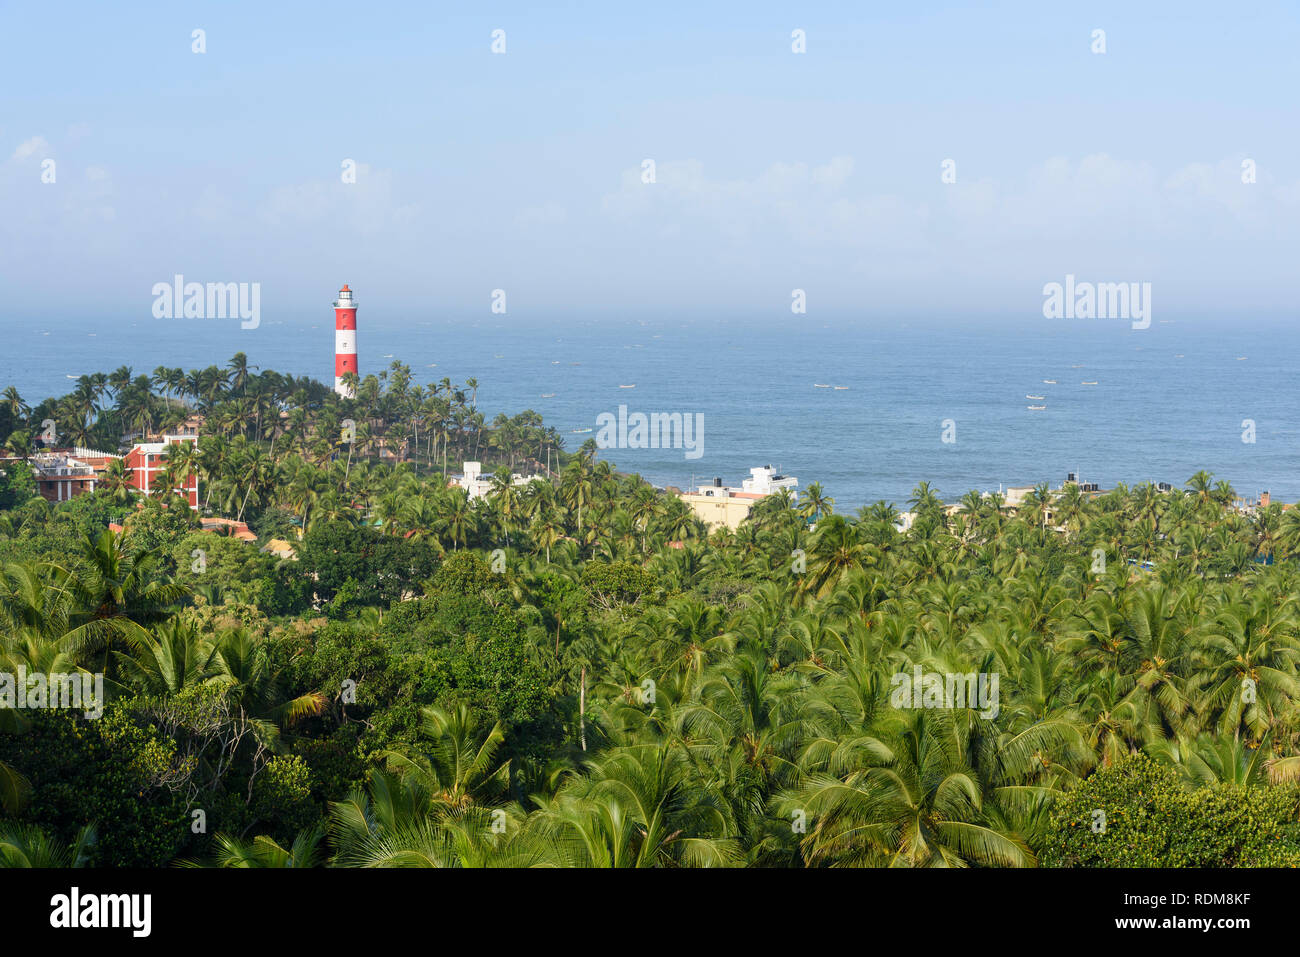 View of Vizhinjam Lighthouse, Kovalam, Kerala, India - Stock Image